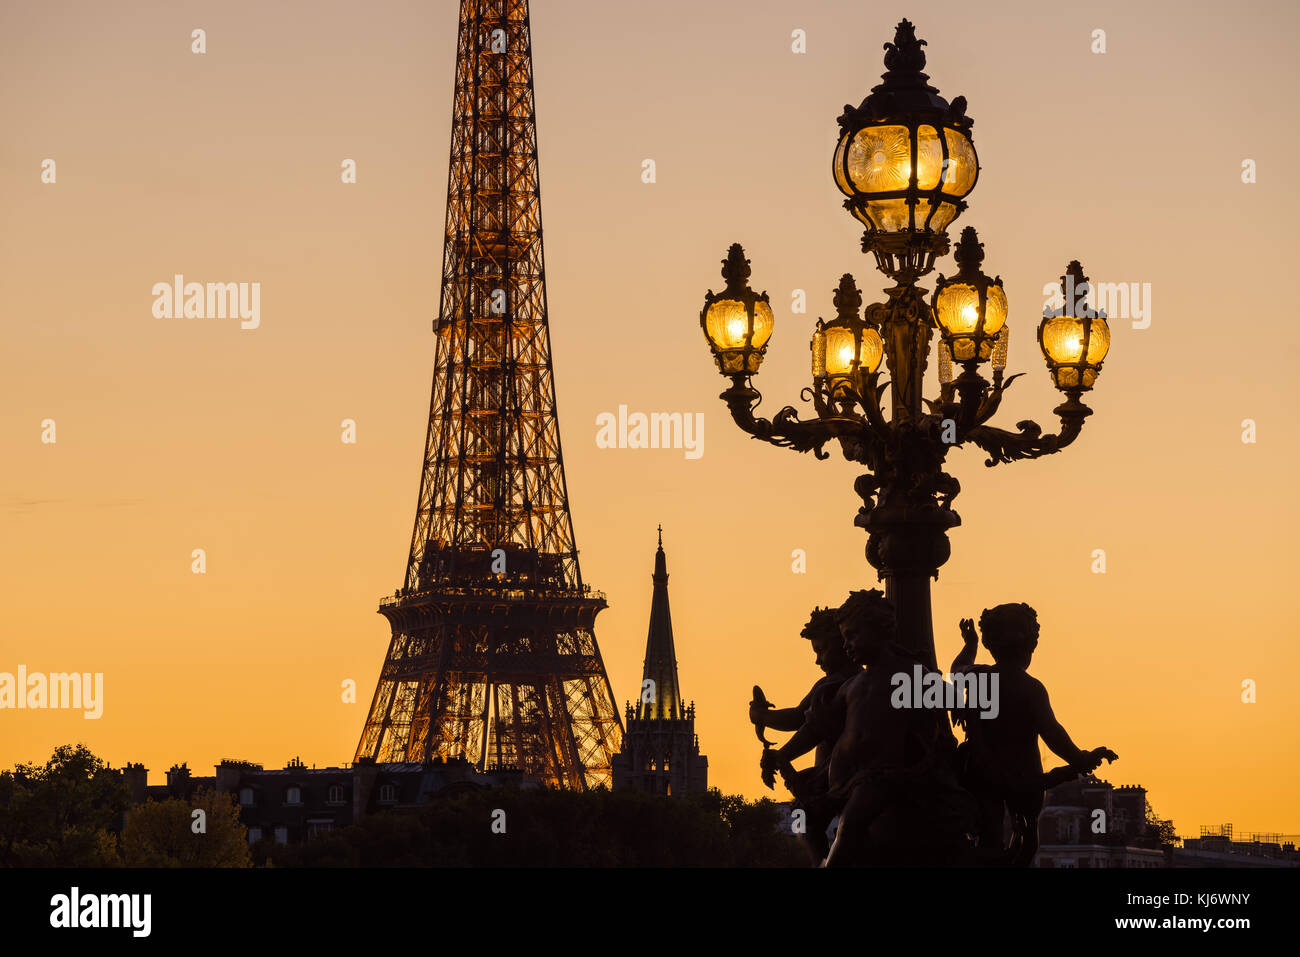 Alexandre III Bridge lamp post silhouette contrasting with the Eiffel Tower at sunset. Paris, France - Stock Image